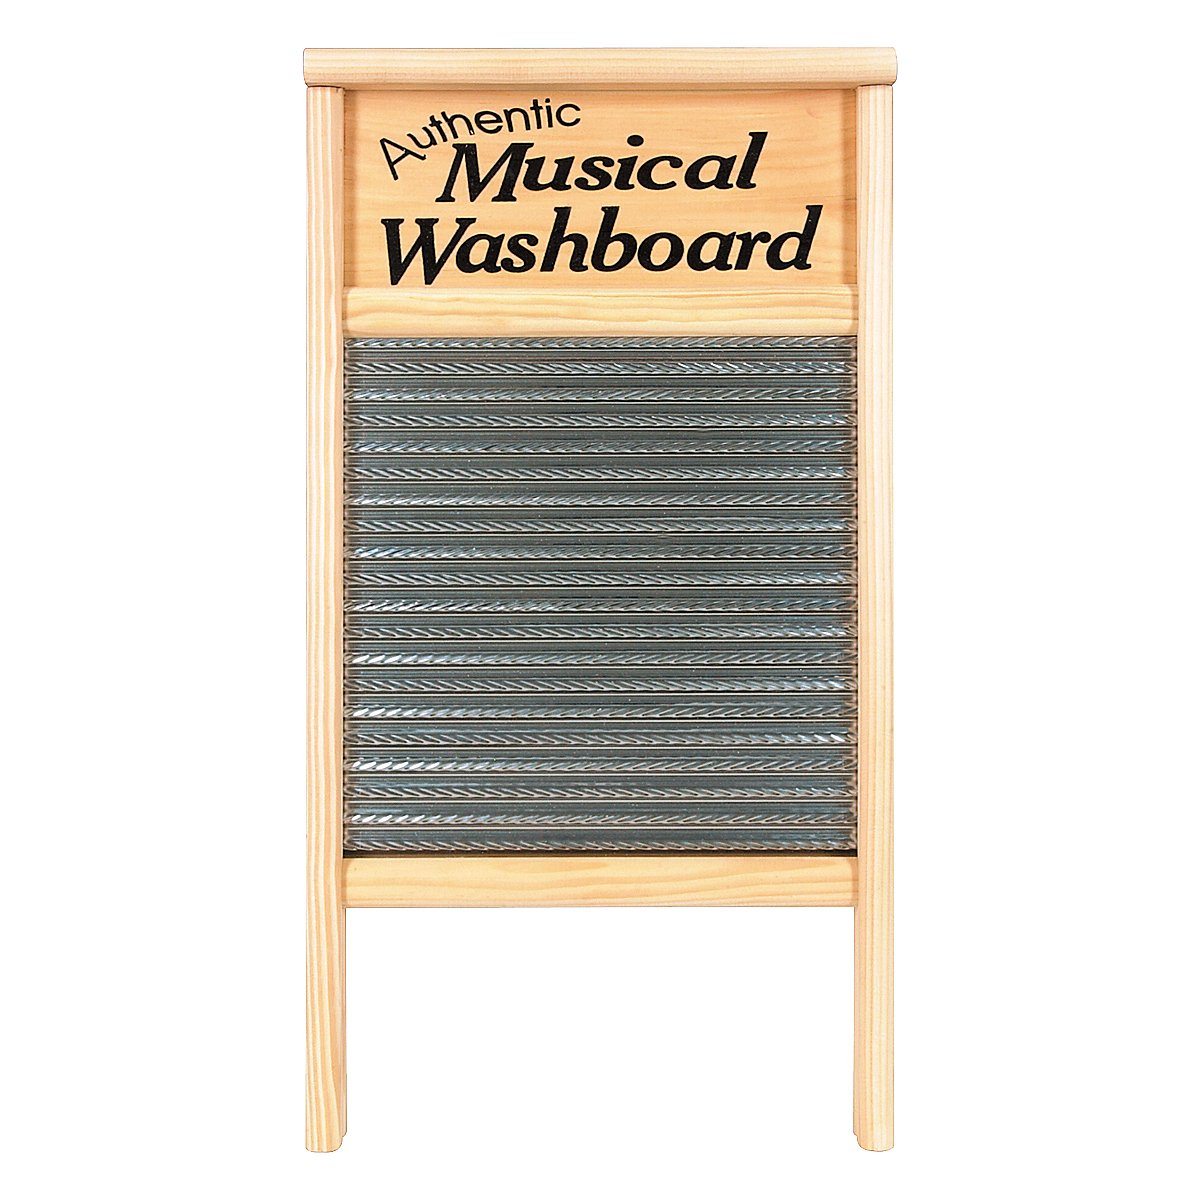 Columbus Washboard 2072-MS Authentic Musical Stainless Washboard Pine 12-7/16x23-3/4 Inches 12-7/16x23-3/4